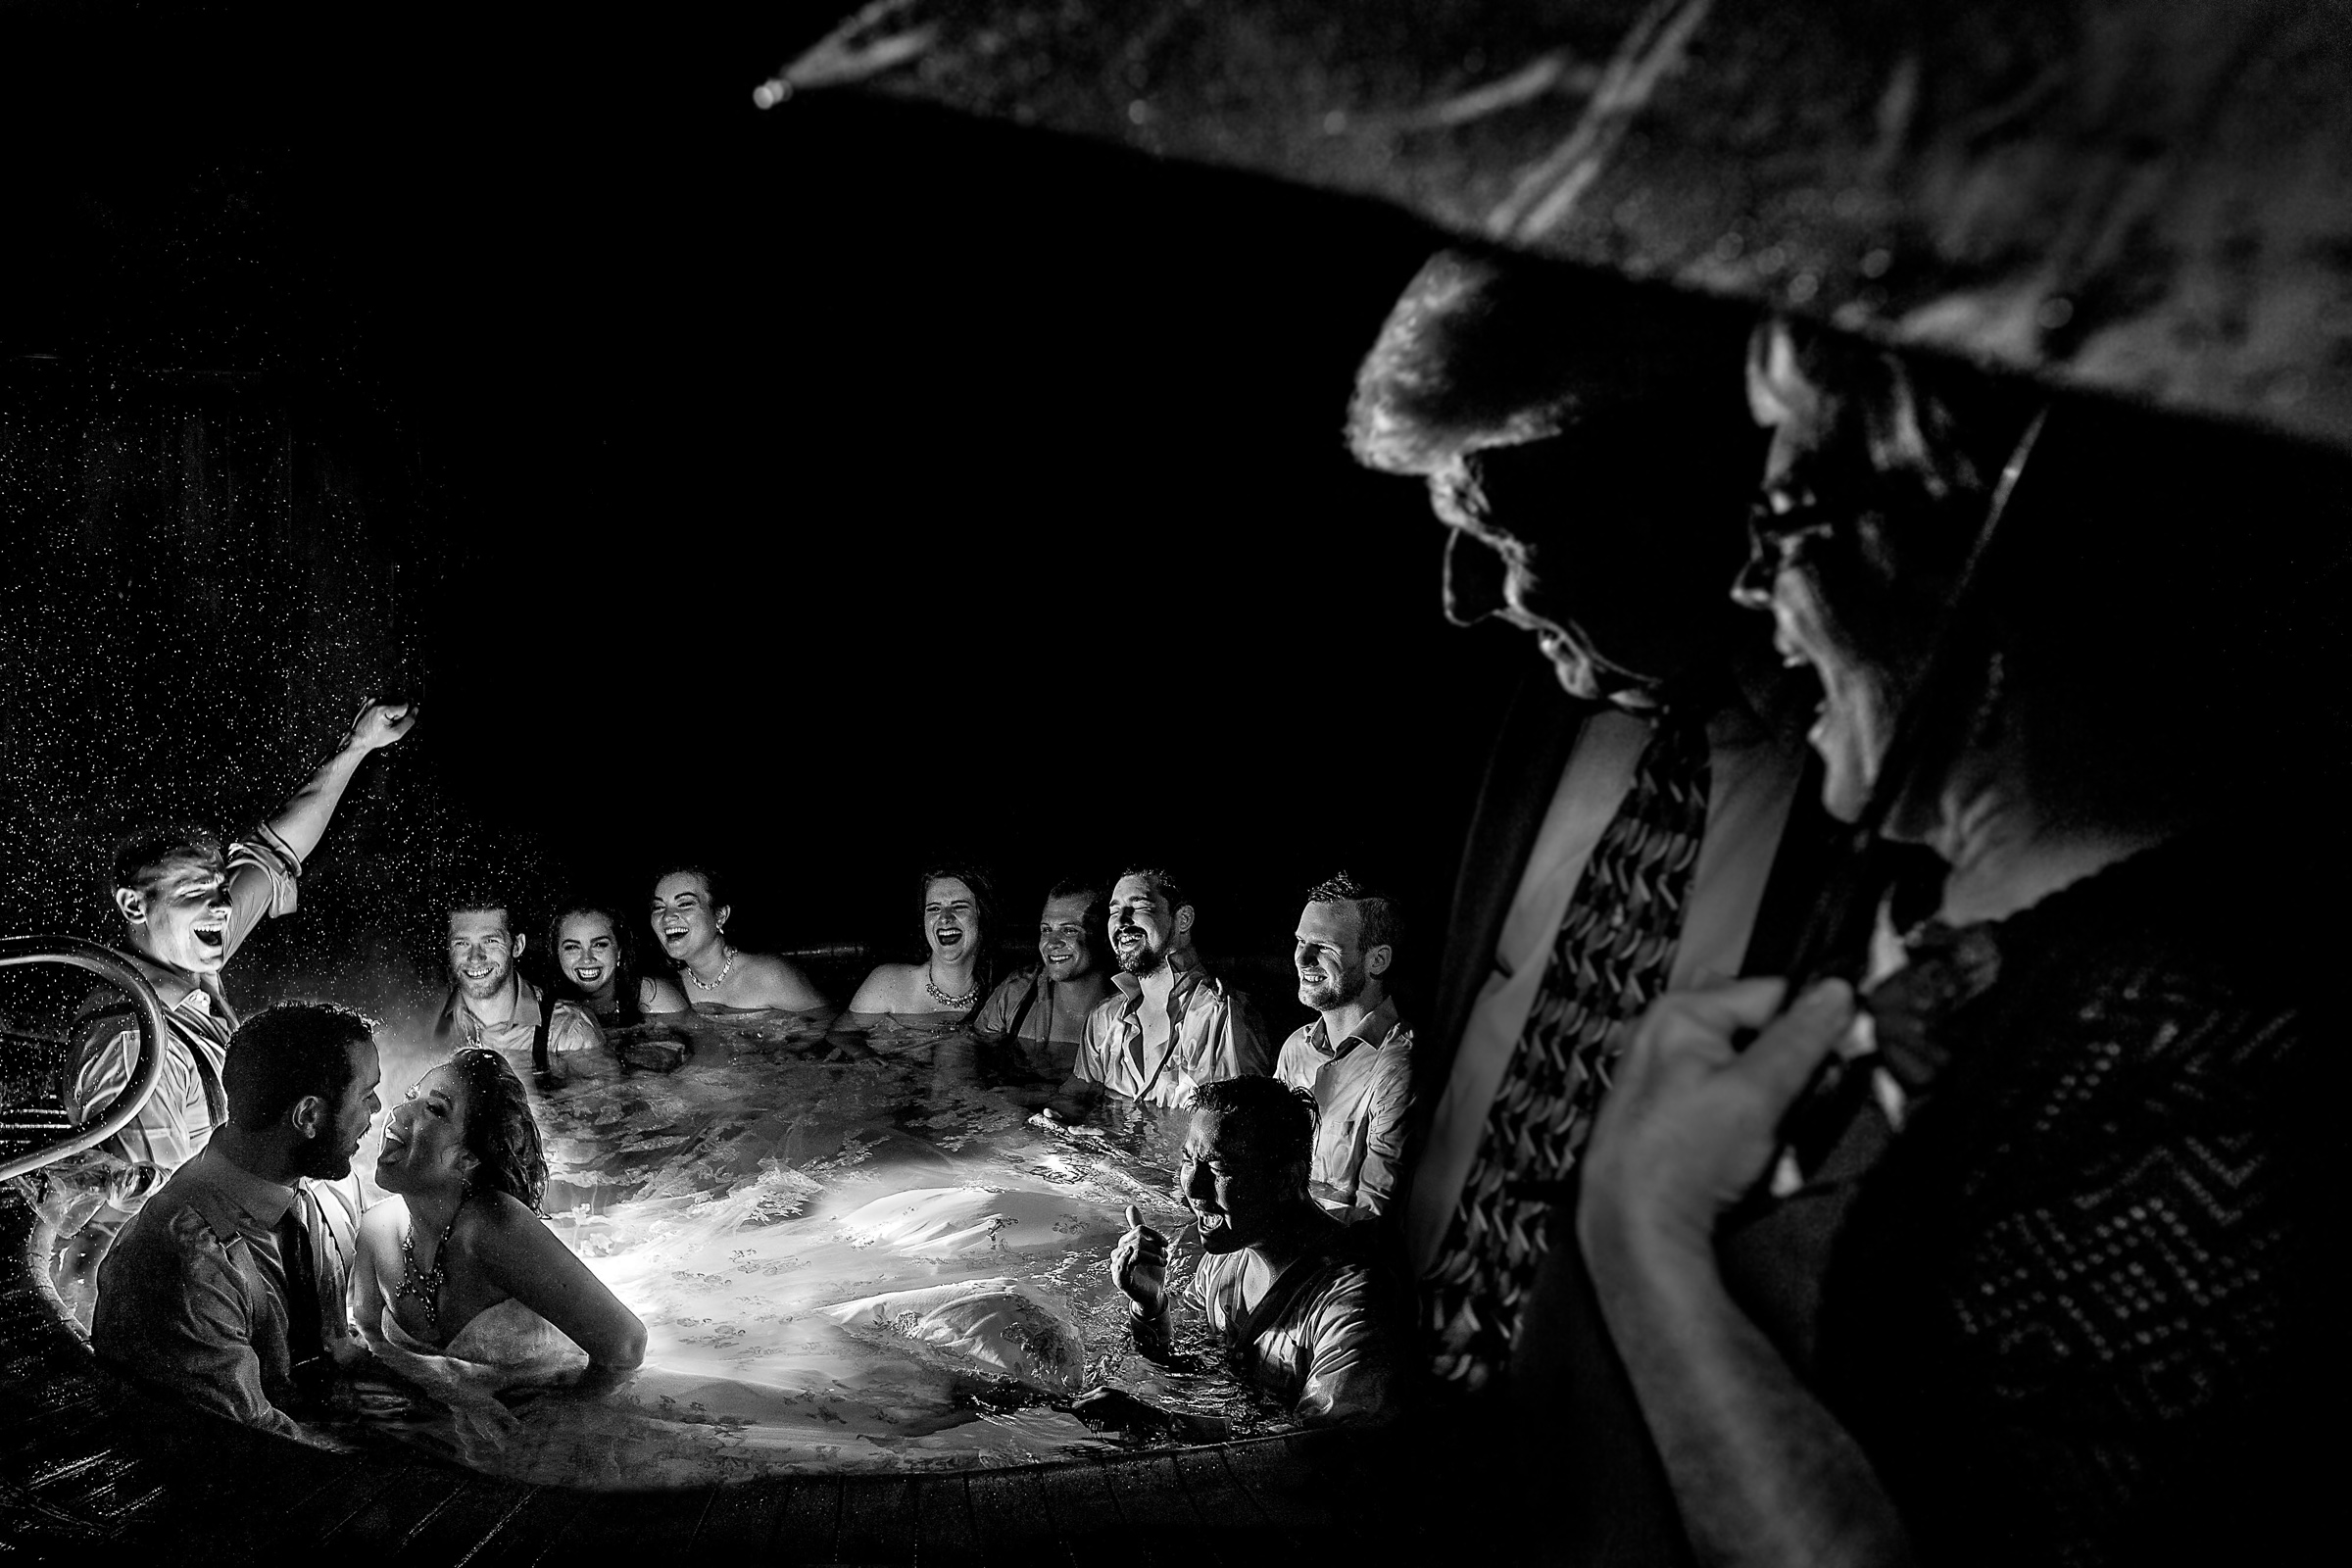 50 best wedding photo concepts - hot tub party by Jos & Tree